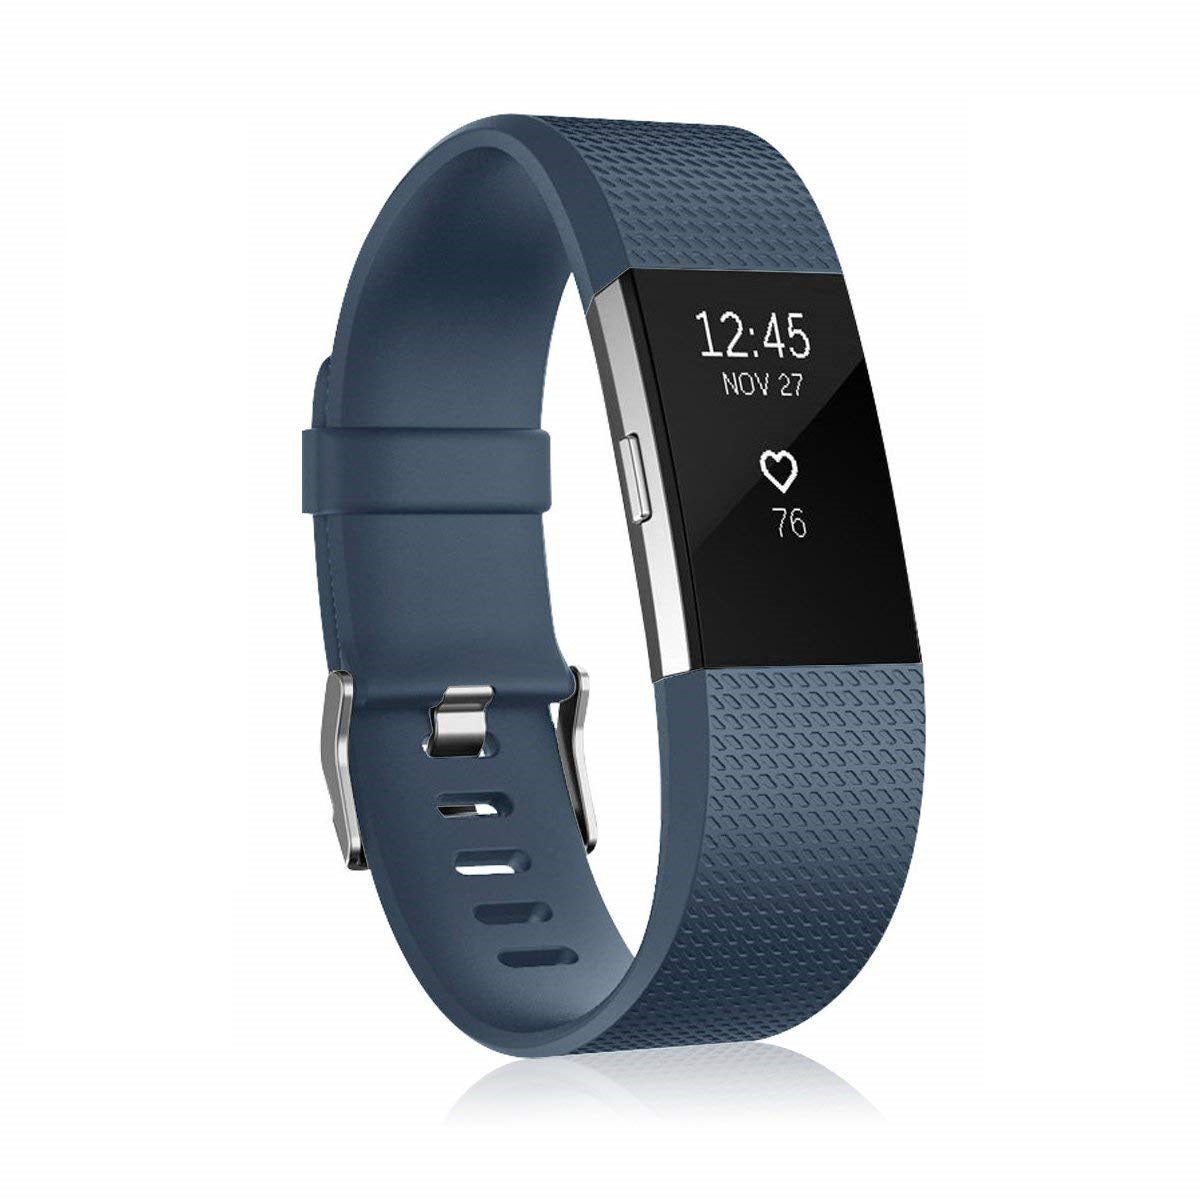 Linxure Silicone Replacement  Strap for the Fitbit Charge 2 - Small | Monthly Madness